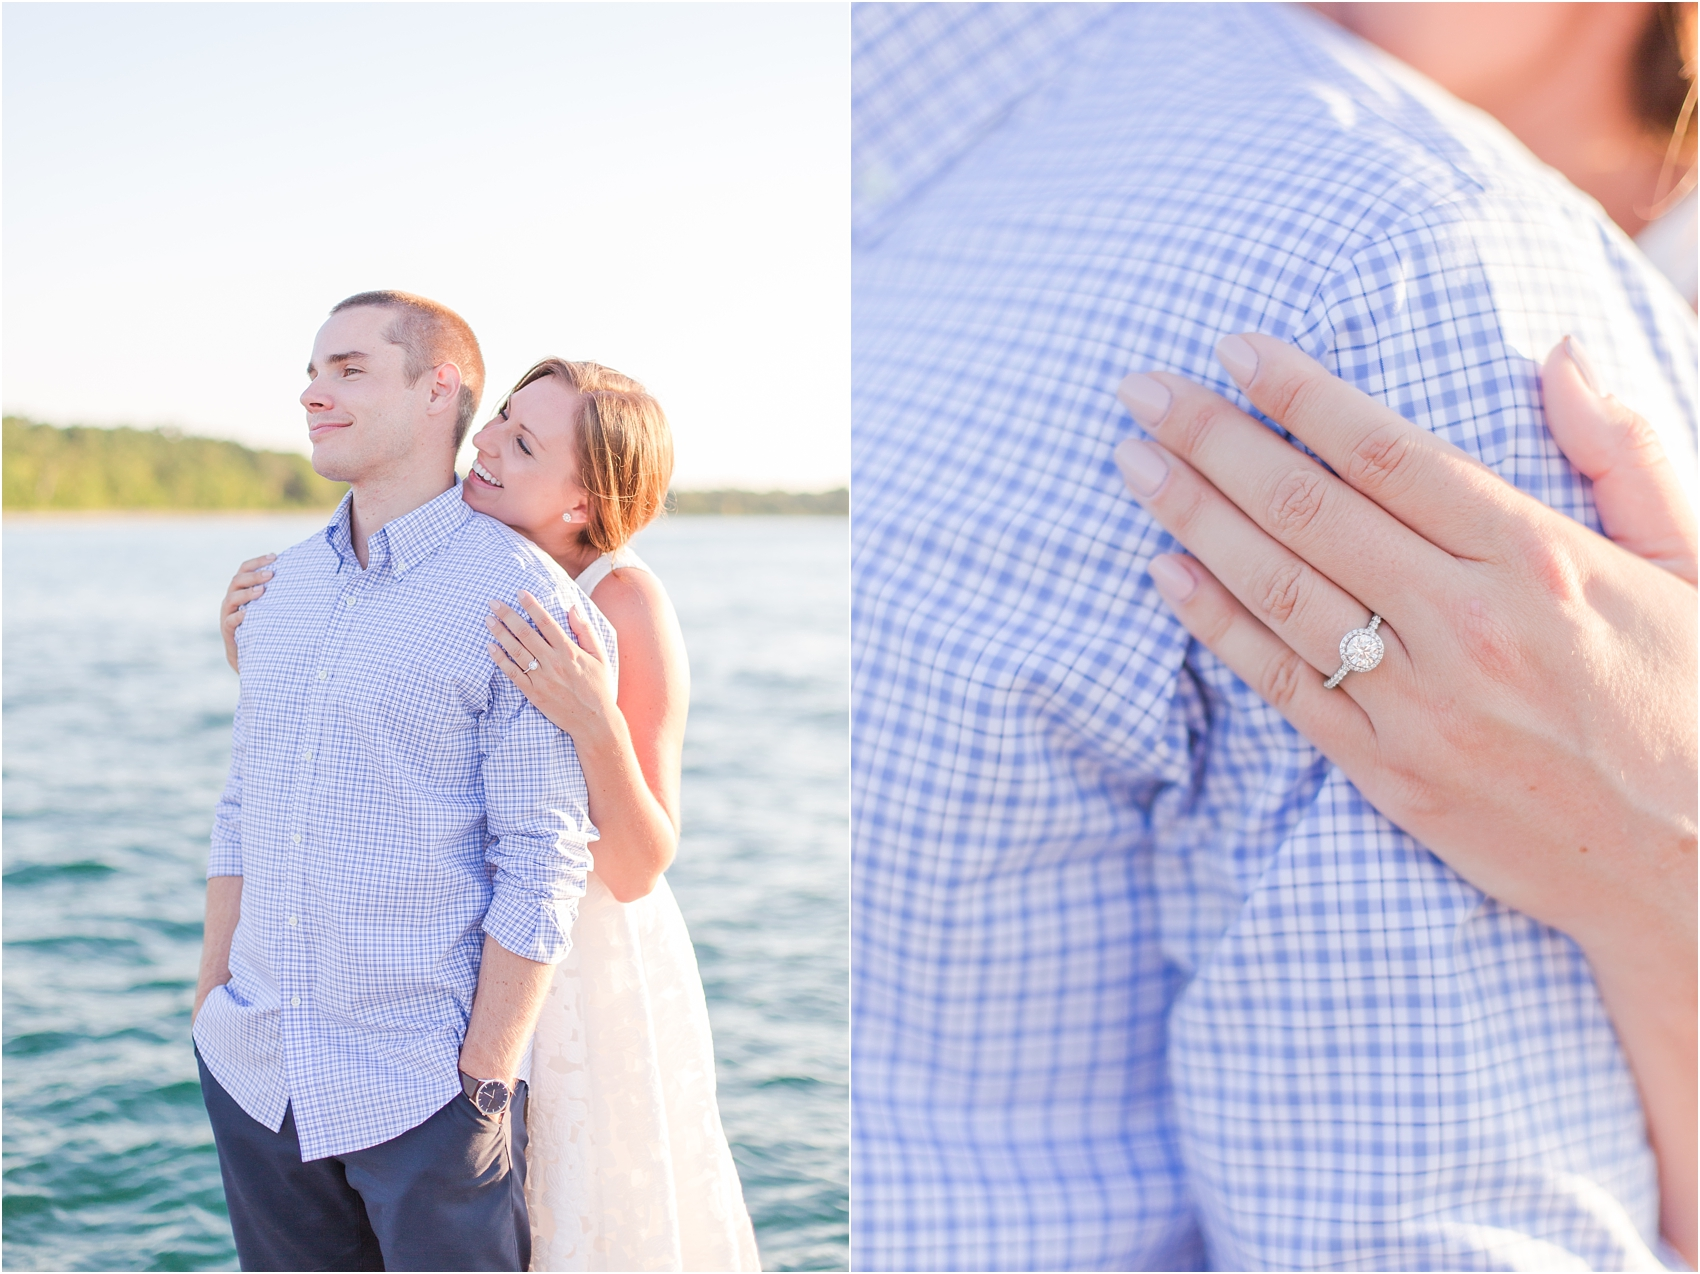 romantic-sunset-engagement-photos-at-the-lighthouse-in-charlevoix-mi-by-courtney-carolyn-photography_0004.jpg